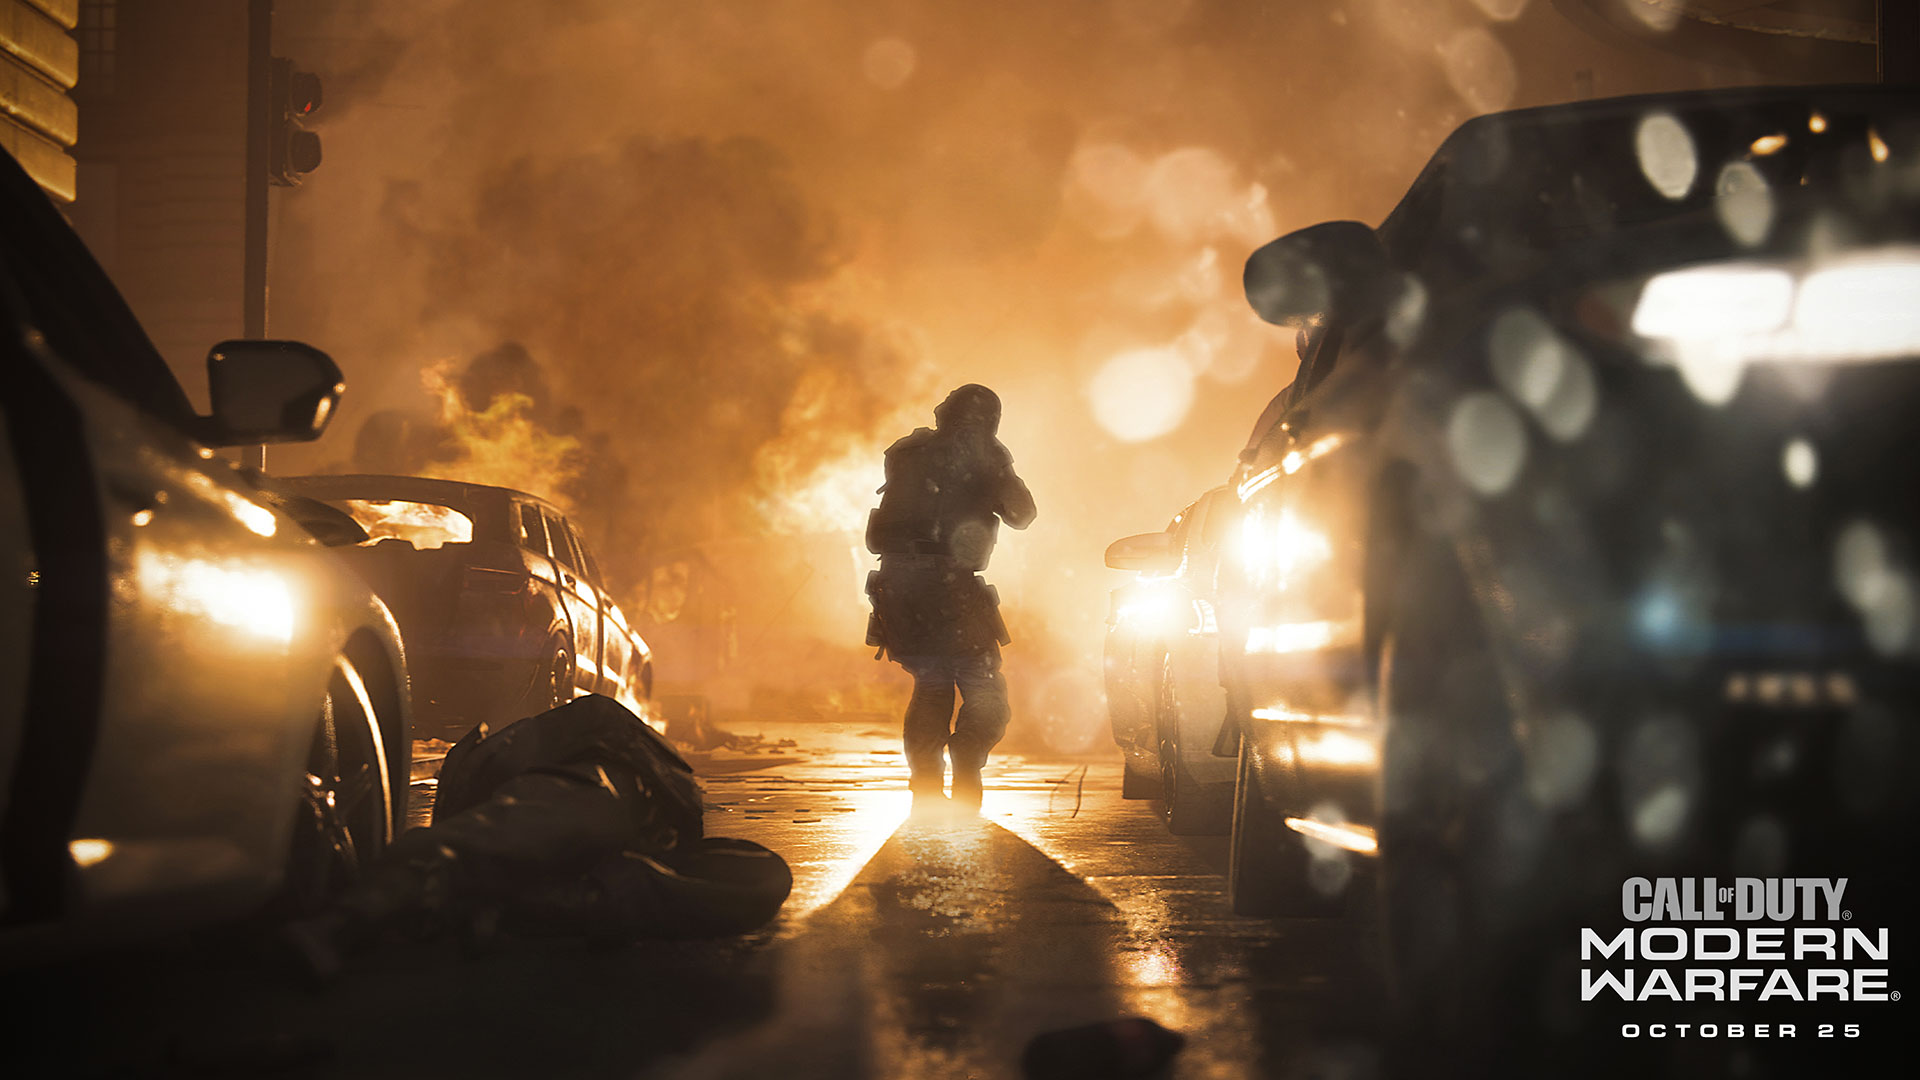 """Call of Duty: Modern Warfare Wants to Re-Imagine the Game that Changed Everything"""""""